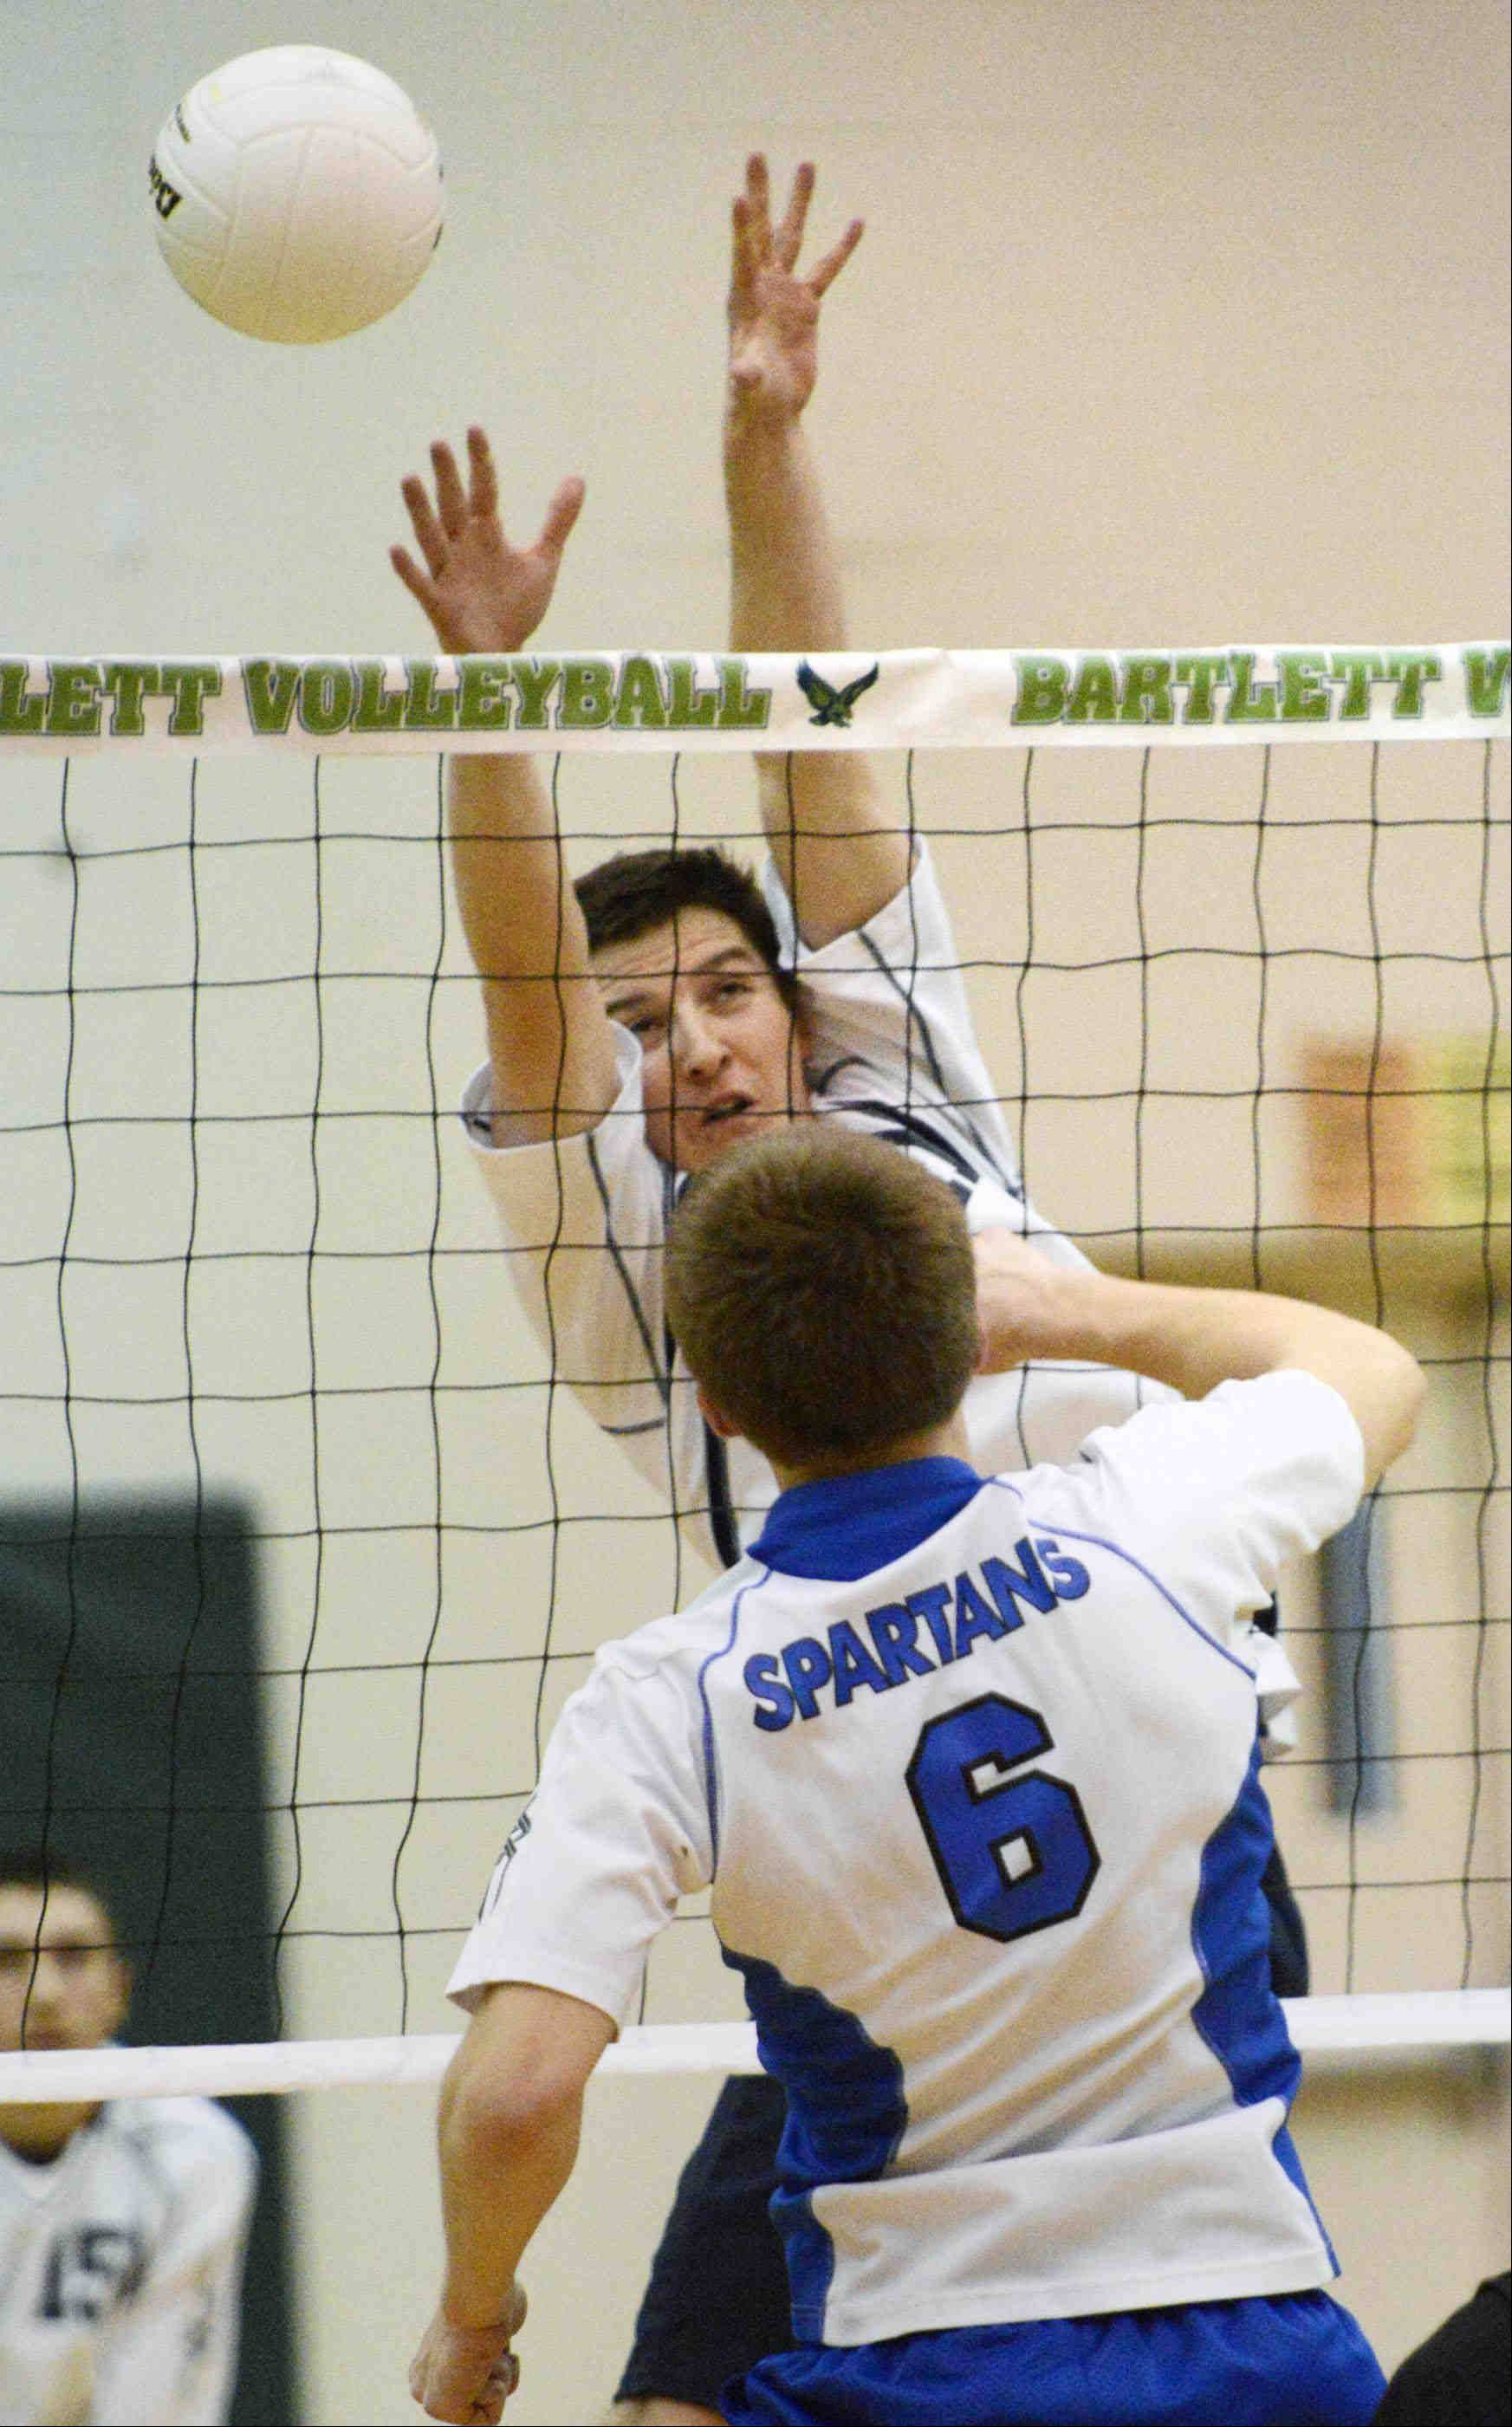 Bartlett's Jack Blum tries to block a shot by St. Francis' Greg Churney on Wednesday in Bartlett.